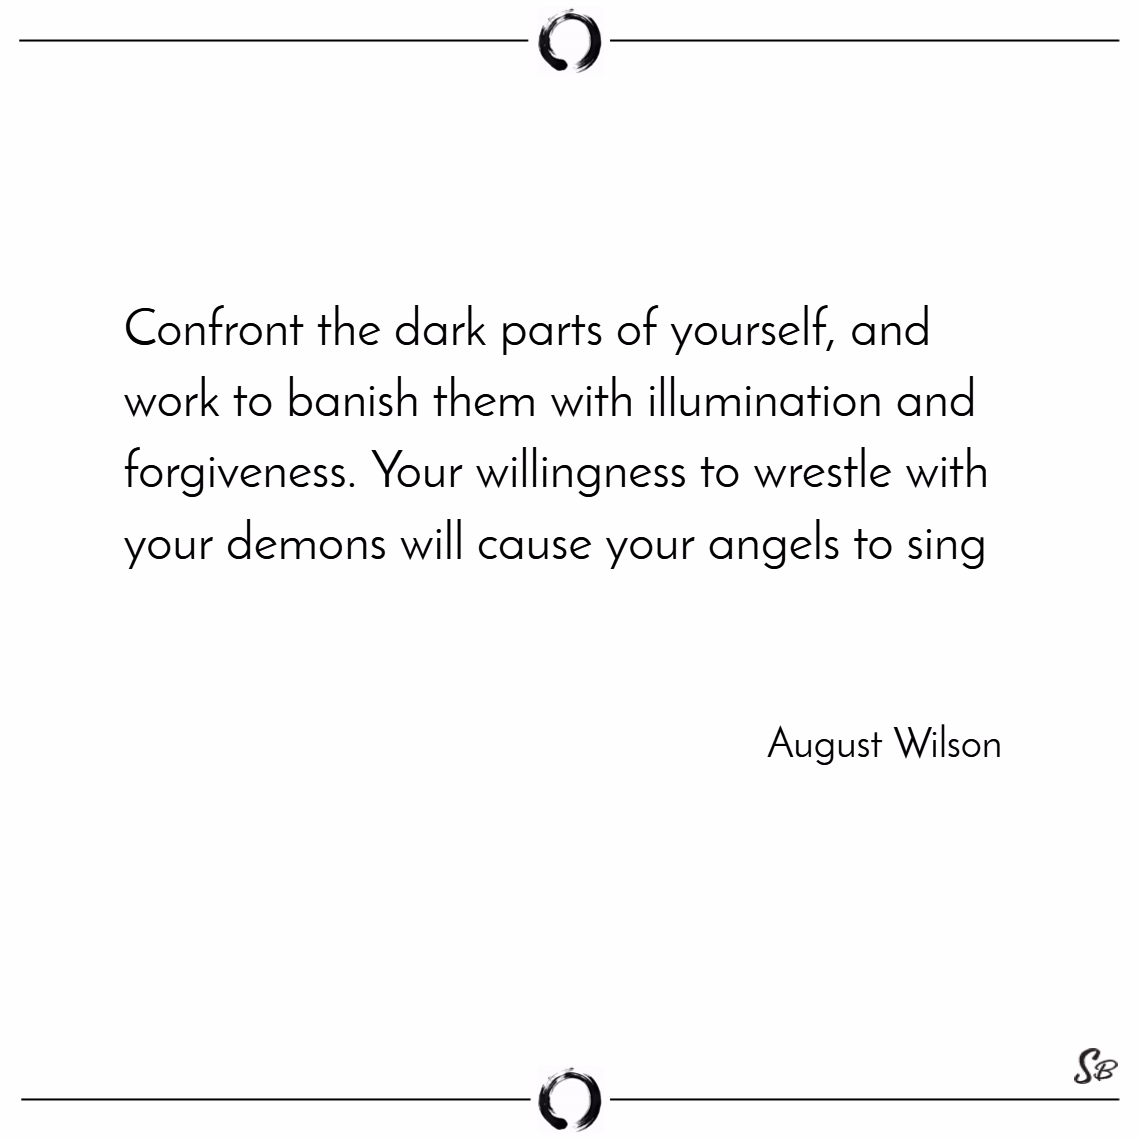 Confront the dark parts of yourself, and work to banish them with illumination and forgiveness. your willingness to wrestle with your demons will cause your angels to sing. – august wilson